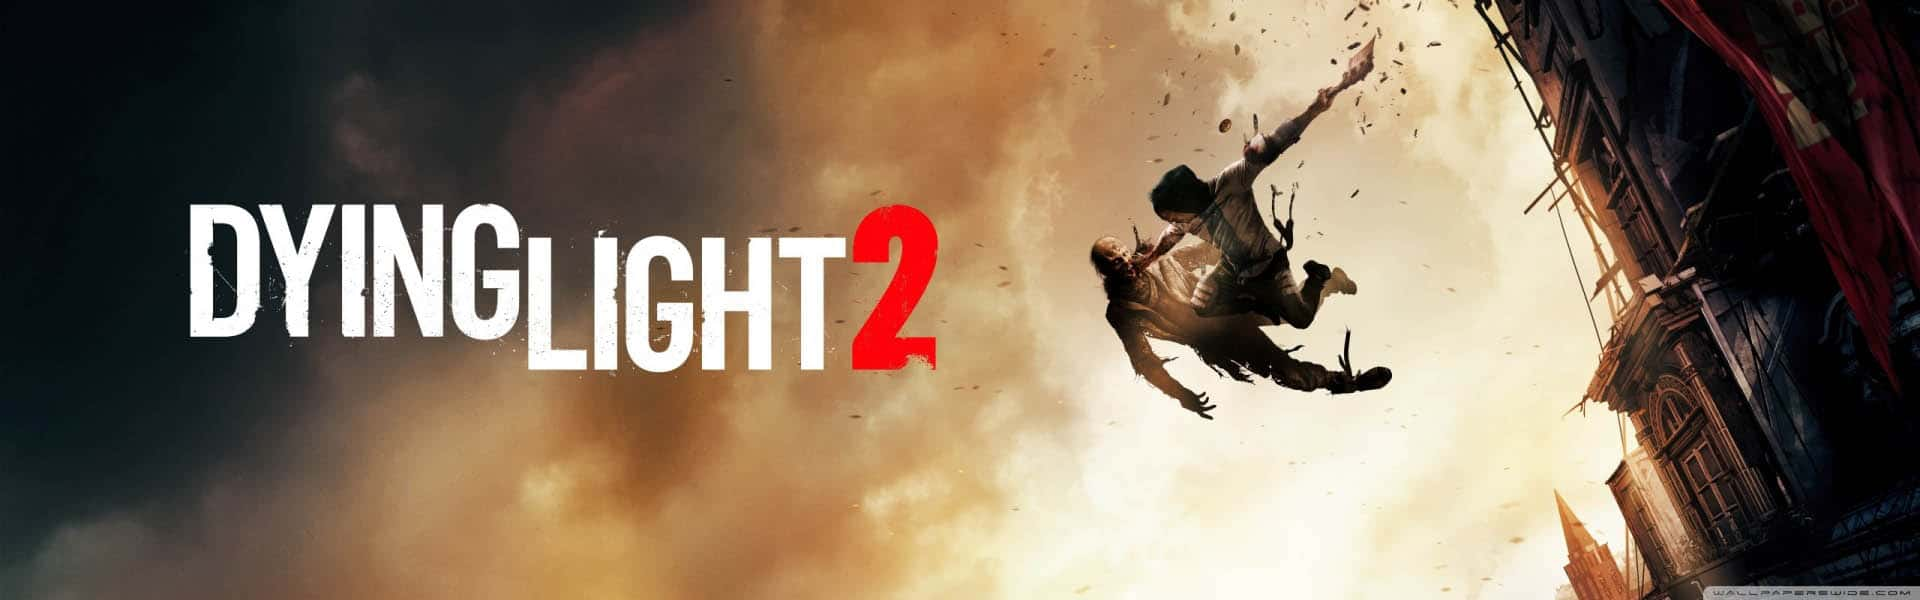 Dying Light 2 Release Date, News, Trailer and Rumors